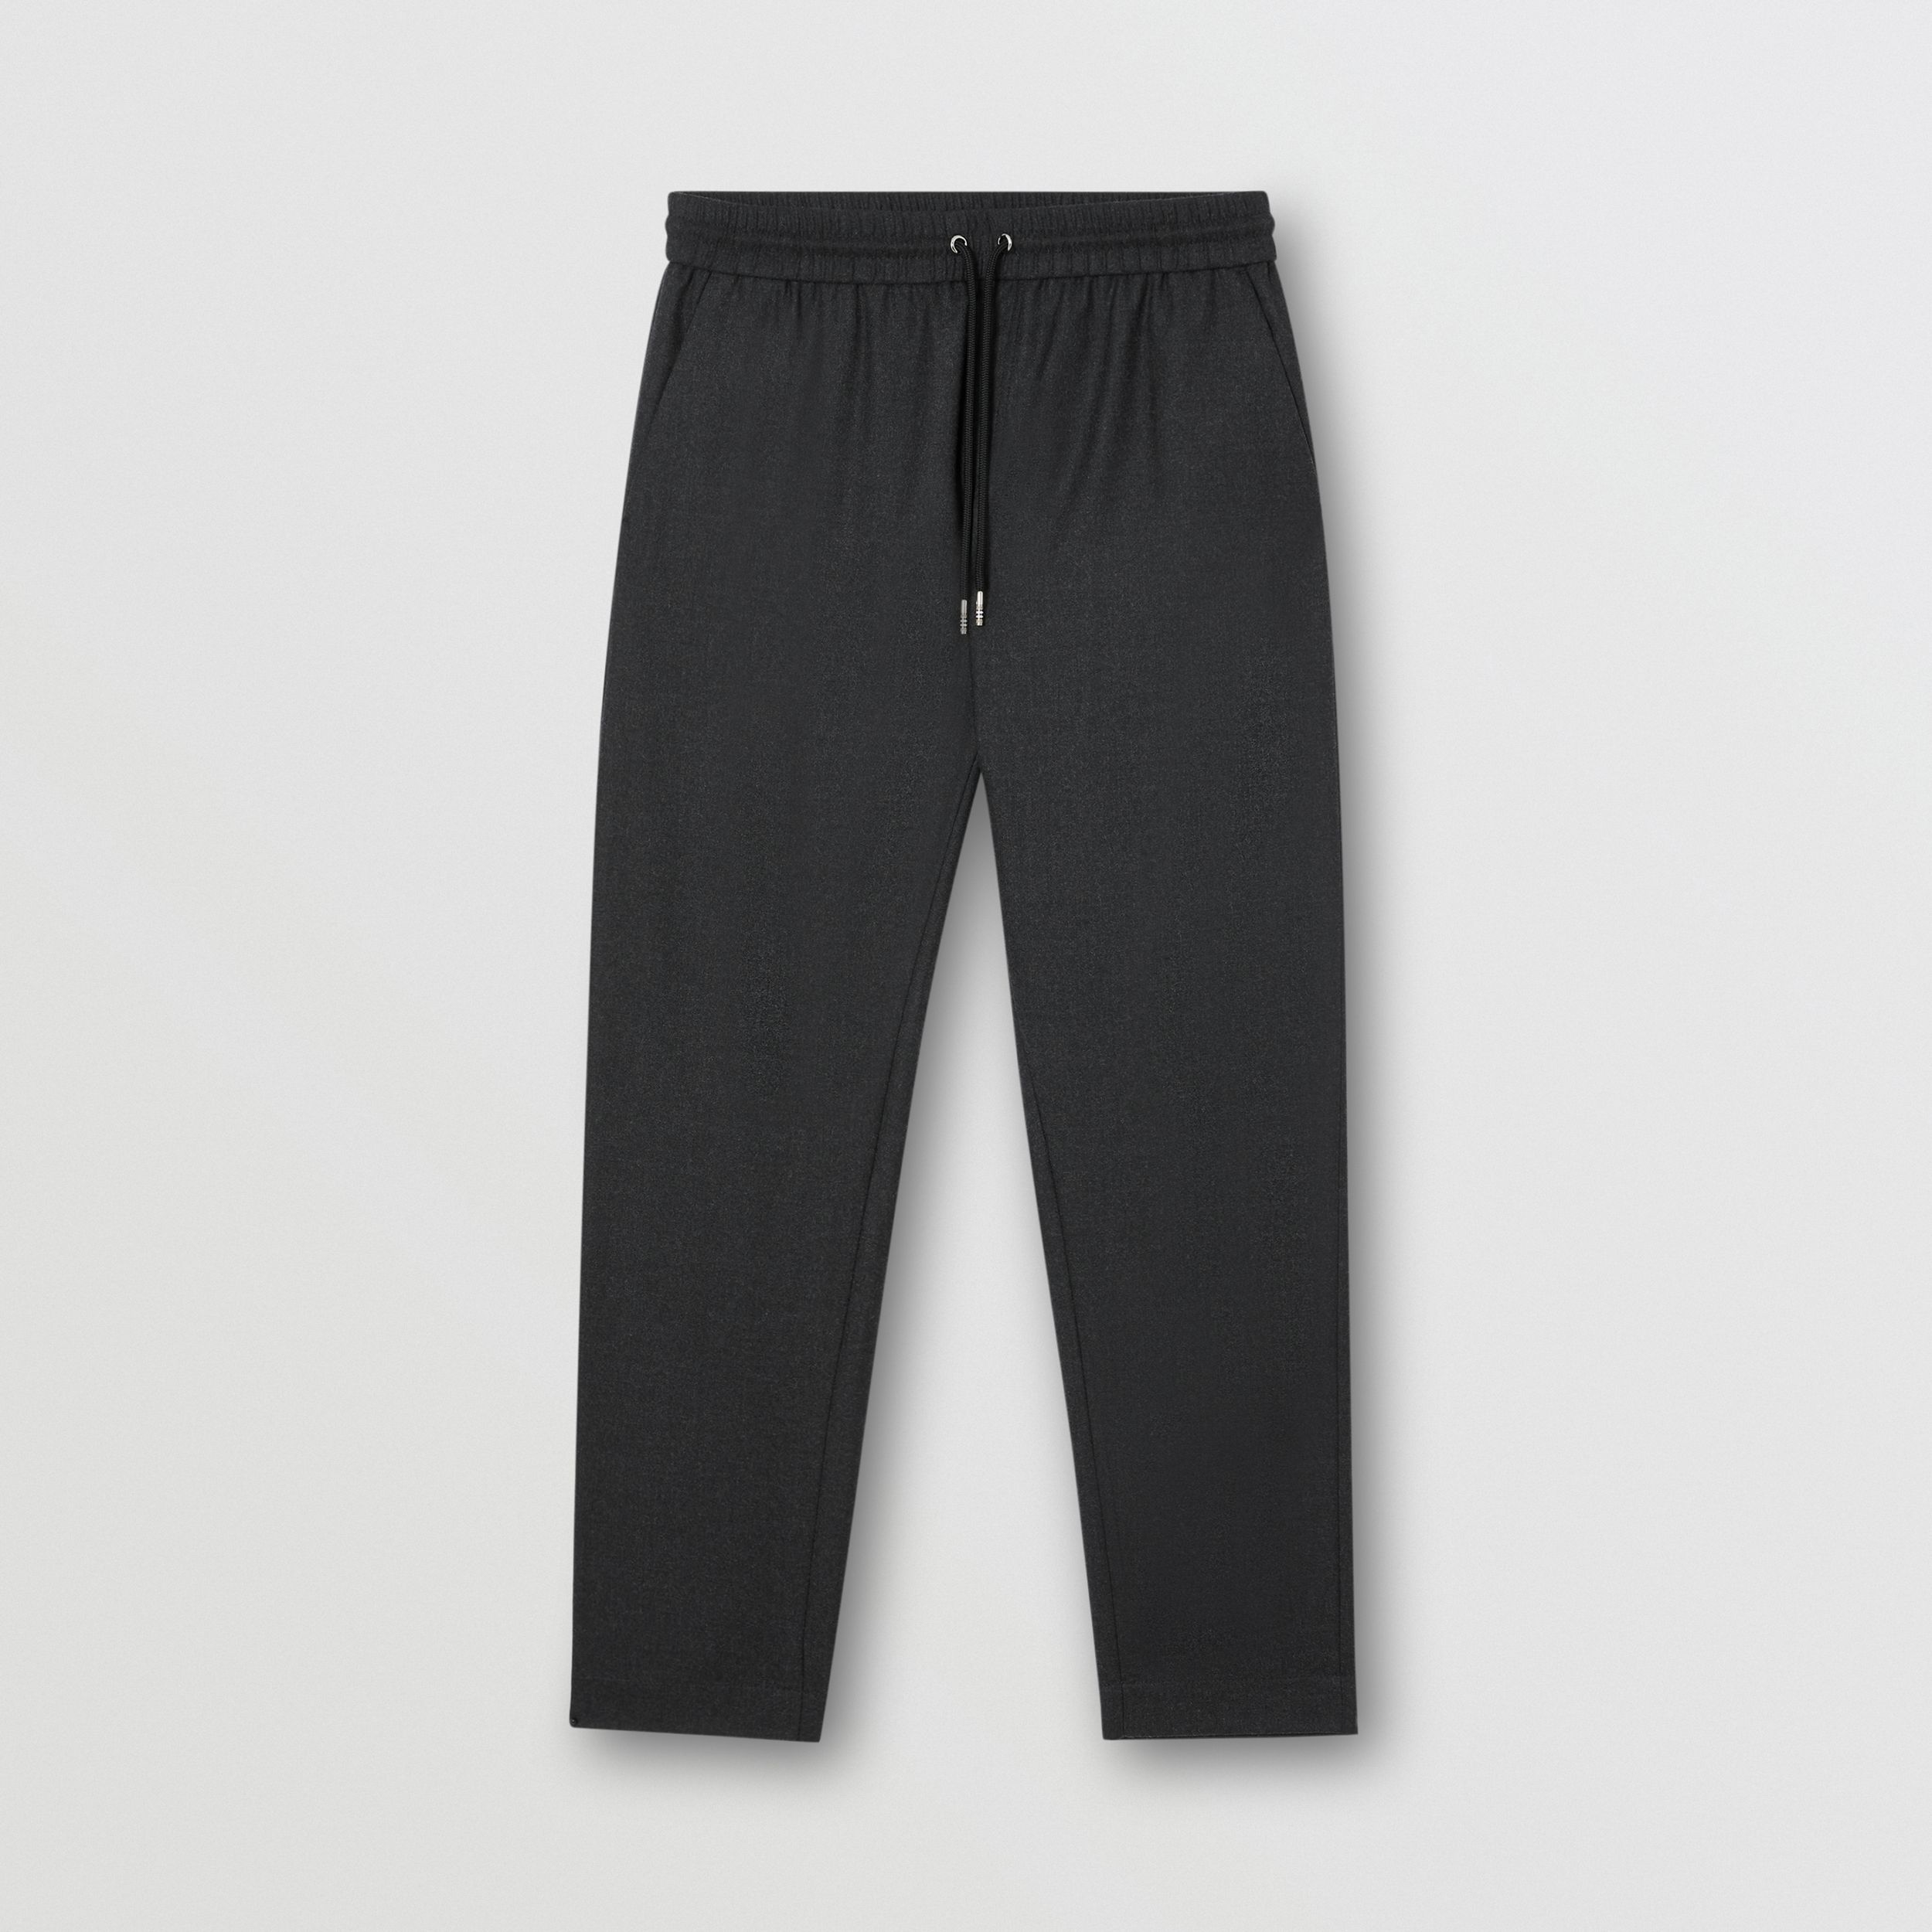 Monogram Motif Wool Jogging Pants in Charcoal Melange - Men | Burberry - 4